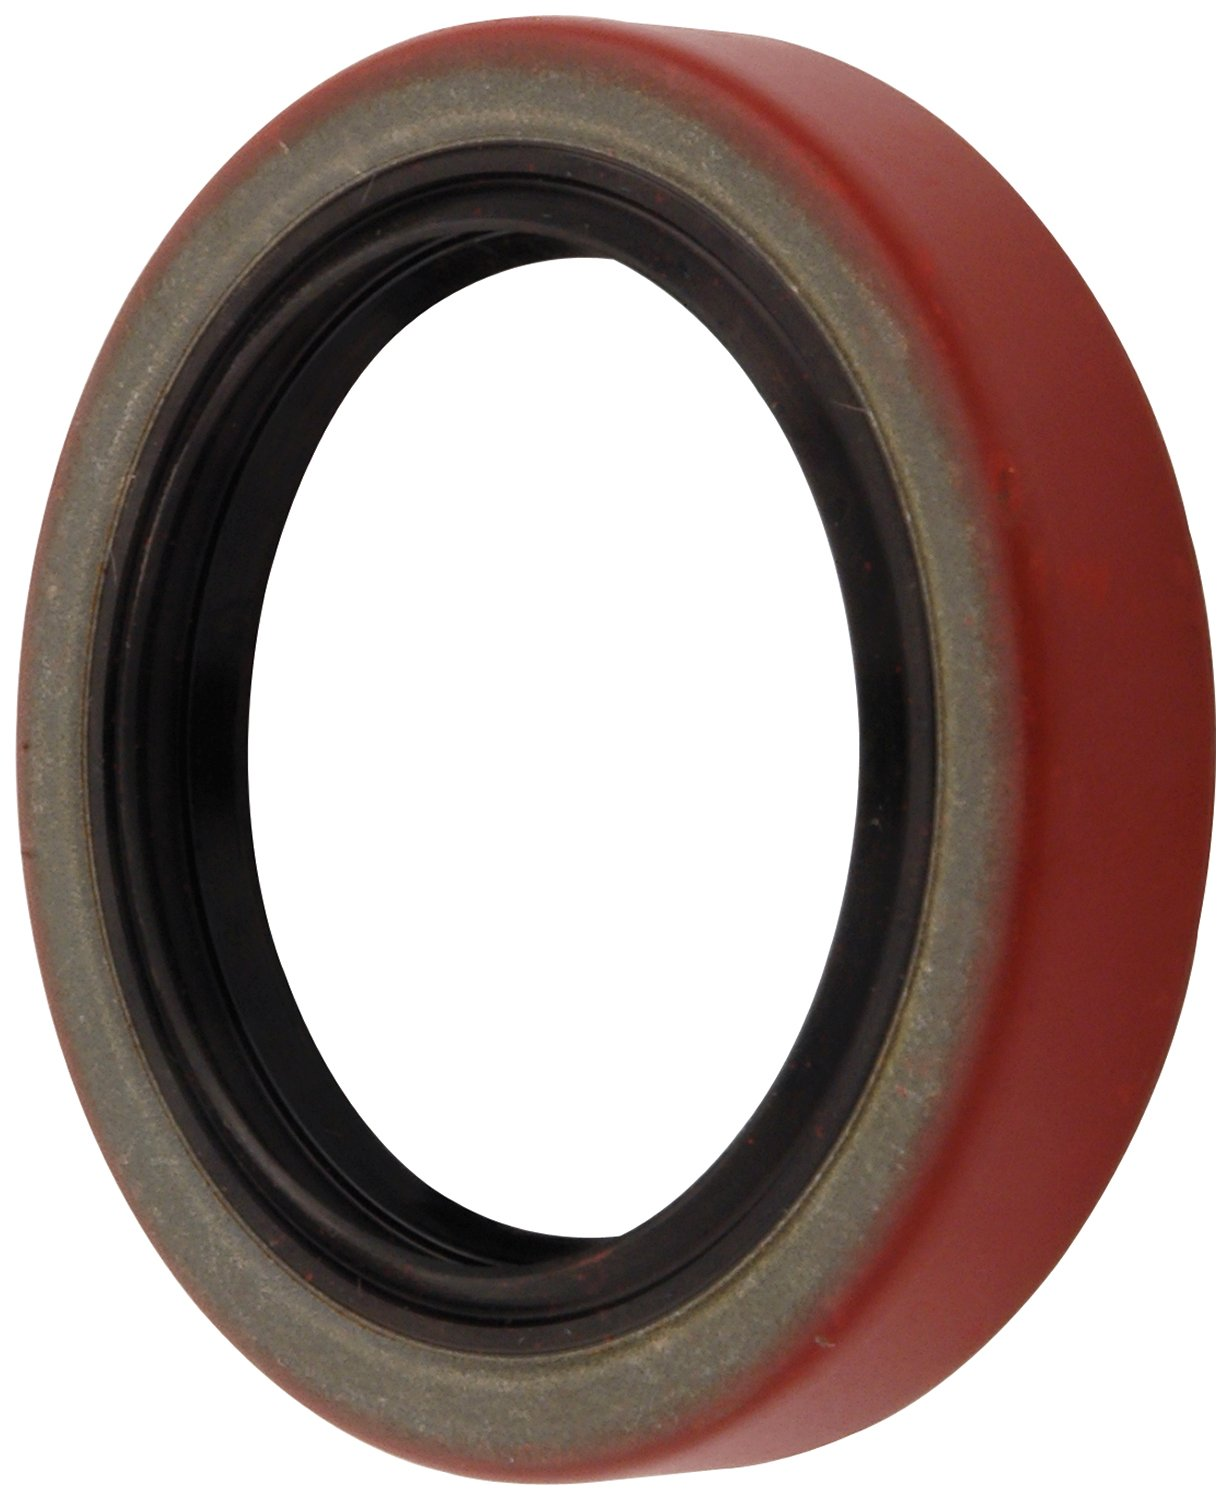 Allstar ALL72147 Differential Pinion Seal for GM 7.5' 10-Bolt Pinion